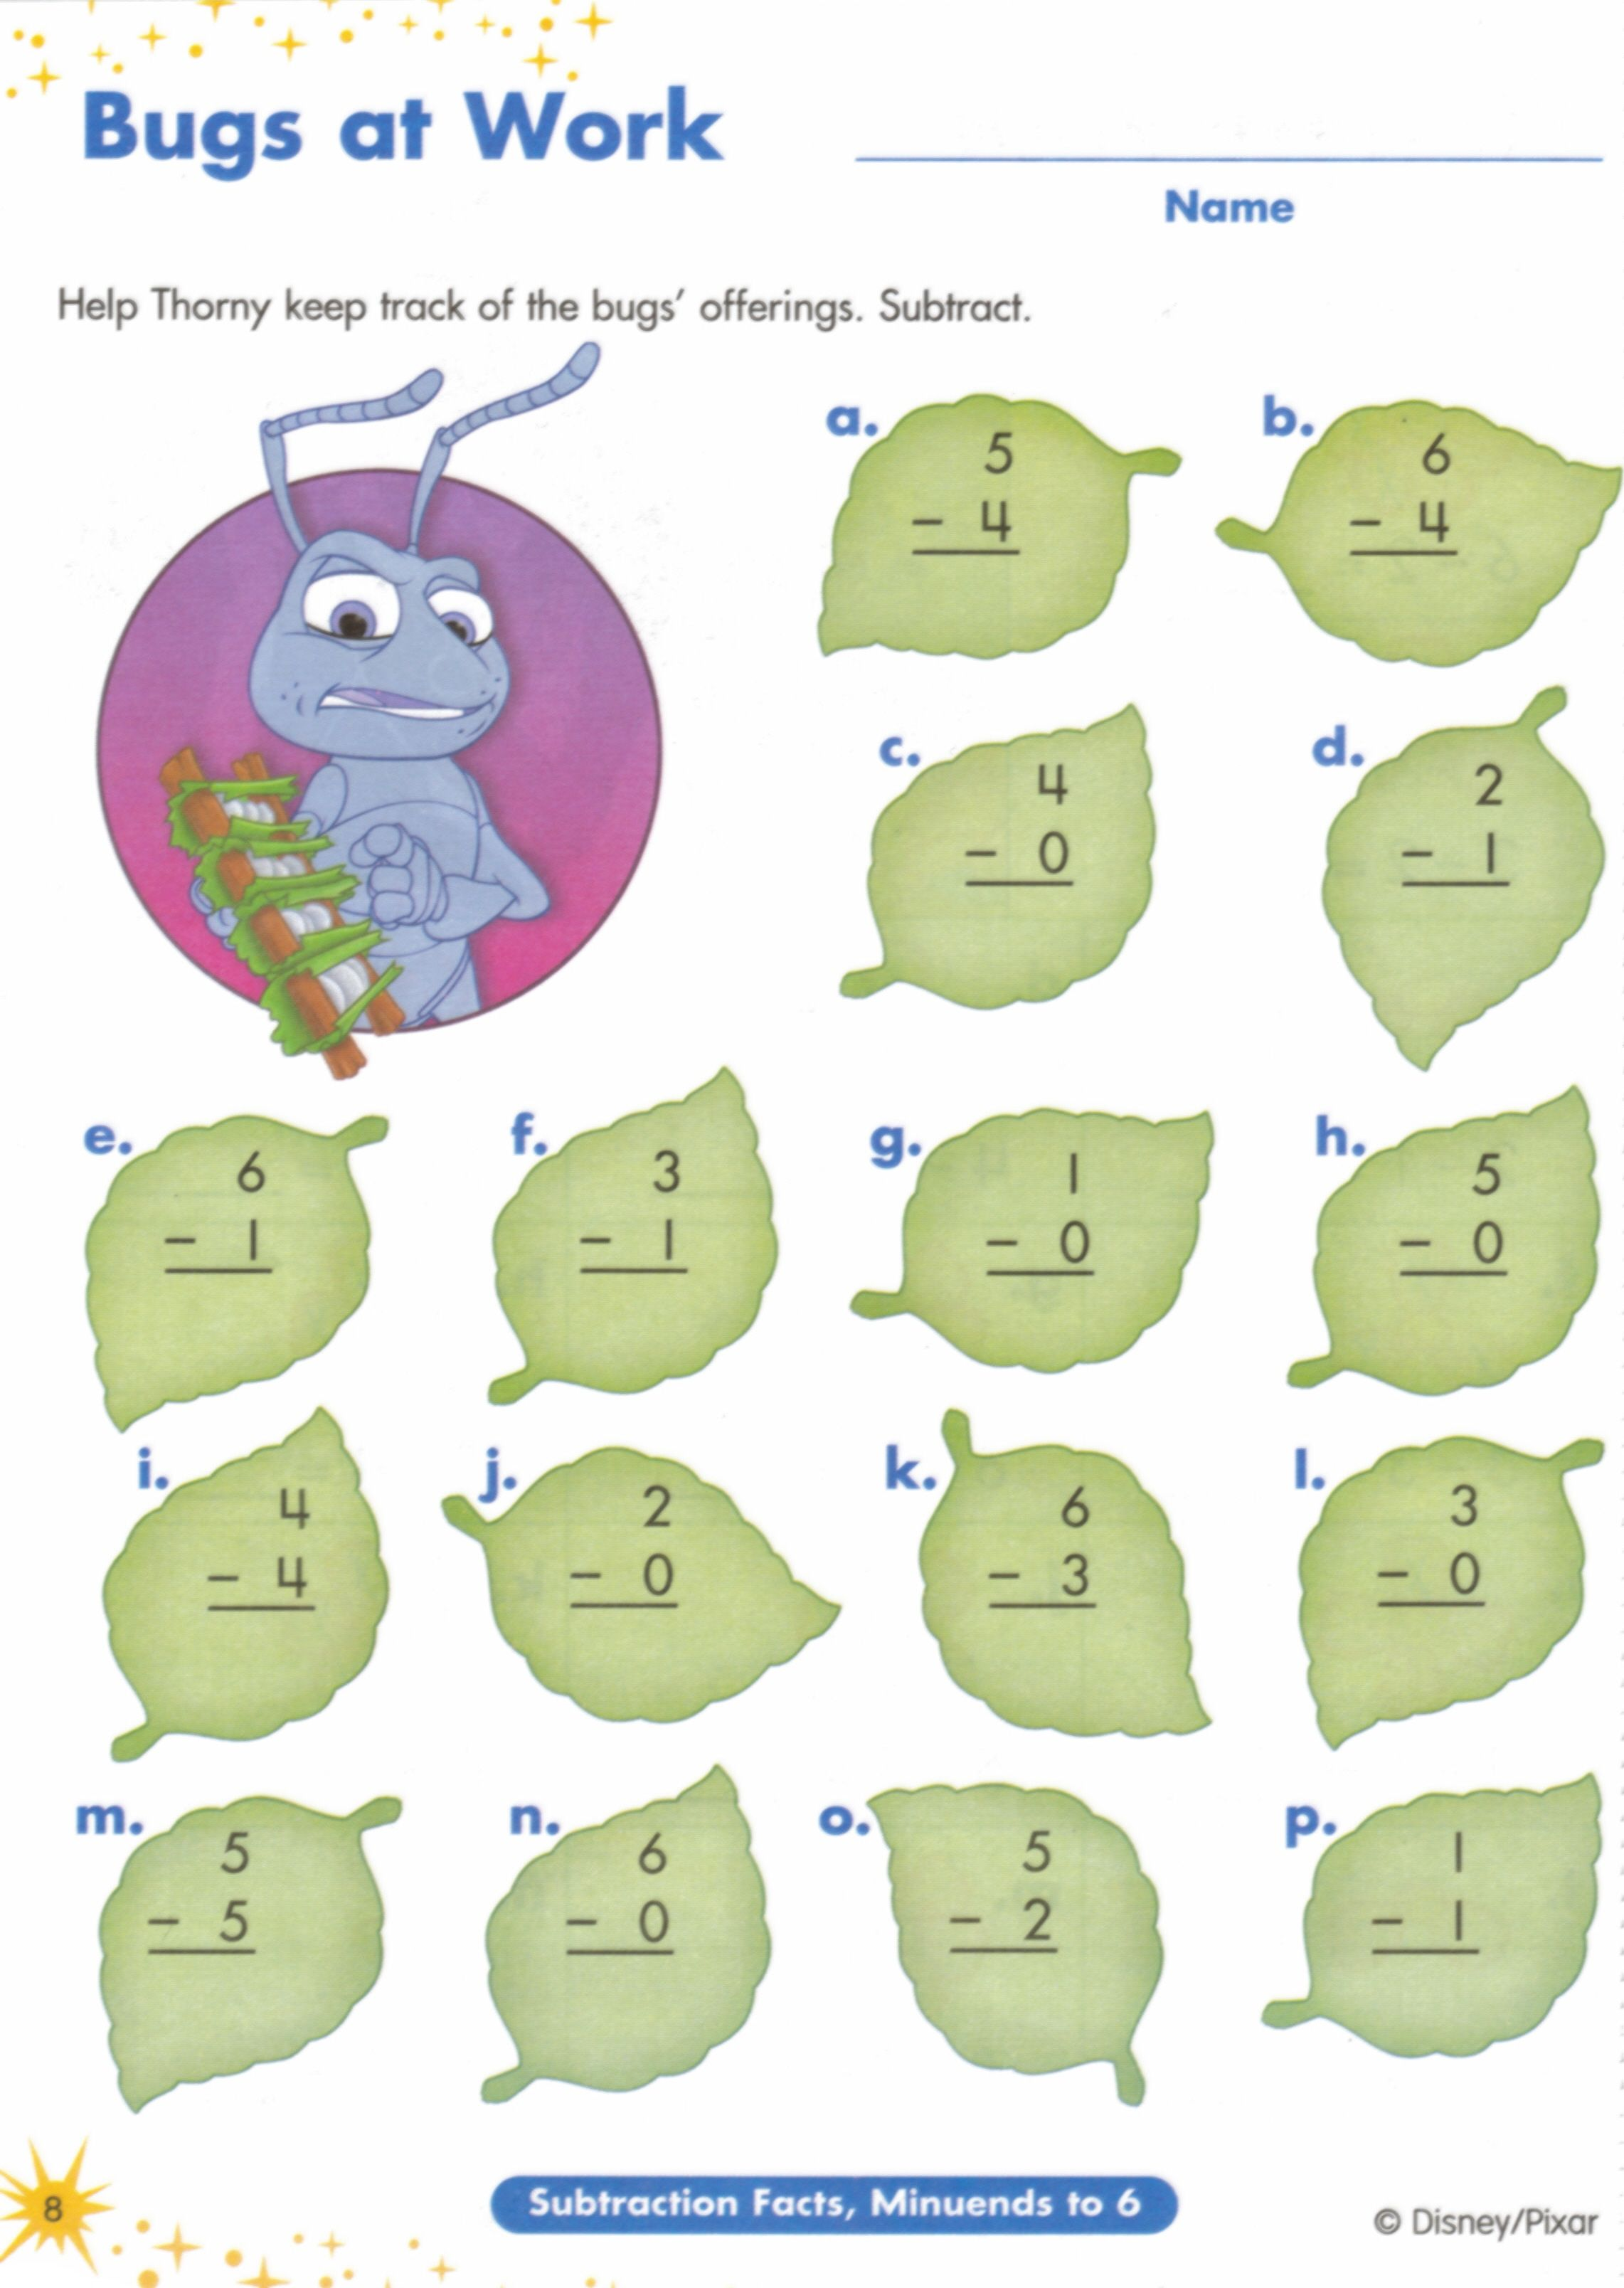 Proatmealus  Surprising  Images About Worksheets On Pinterest  Fun Facts For Kids  With Interesting  Images About Worksheets On Pinterest  Fun Facts For Kids Earth Day Worksheets And Jungles With Astonishing Excel Worksheet Definition Also Surface Area Of Solids Worksheet In Addition Free Math Addition Worksheets And Pedigree Worksheet Middle School As Well As Vertebrate Worksheet Additionally Compare And Contrast Worksheets Nd Grade From Pinterestcom With Proatmealus  Interesting  Images About Worksheets On Pinterest  Fun Facts For Kids  With Astonishing  Images About Worksheets On Pinterest  Fun Facts For Kids Earth Day Worksheets And Jungles And Surprising Excel Worksheet Definition Also Surface Area Of Solids Worksheet In Addition Free Math Addition Worksheets From Pinterestcom